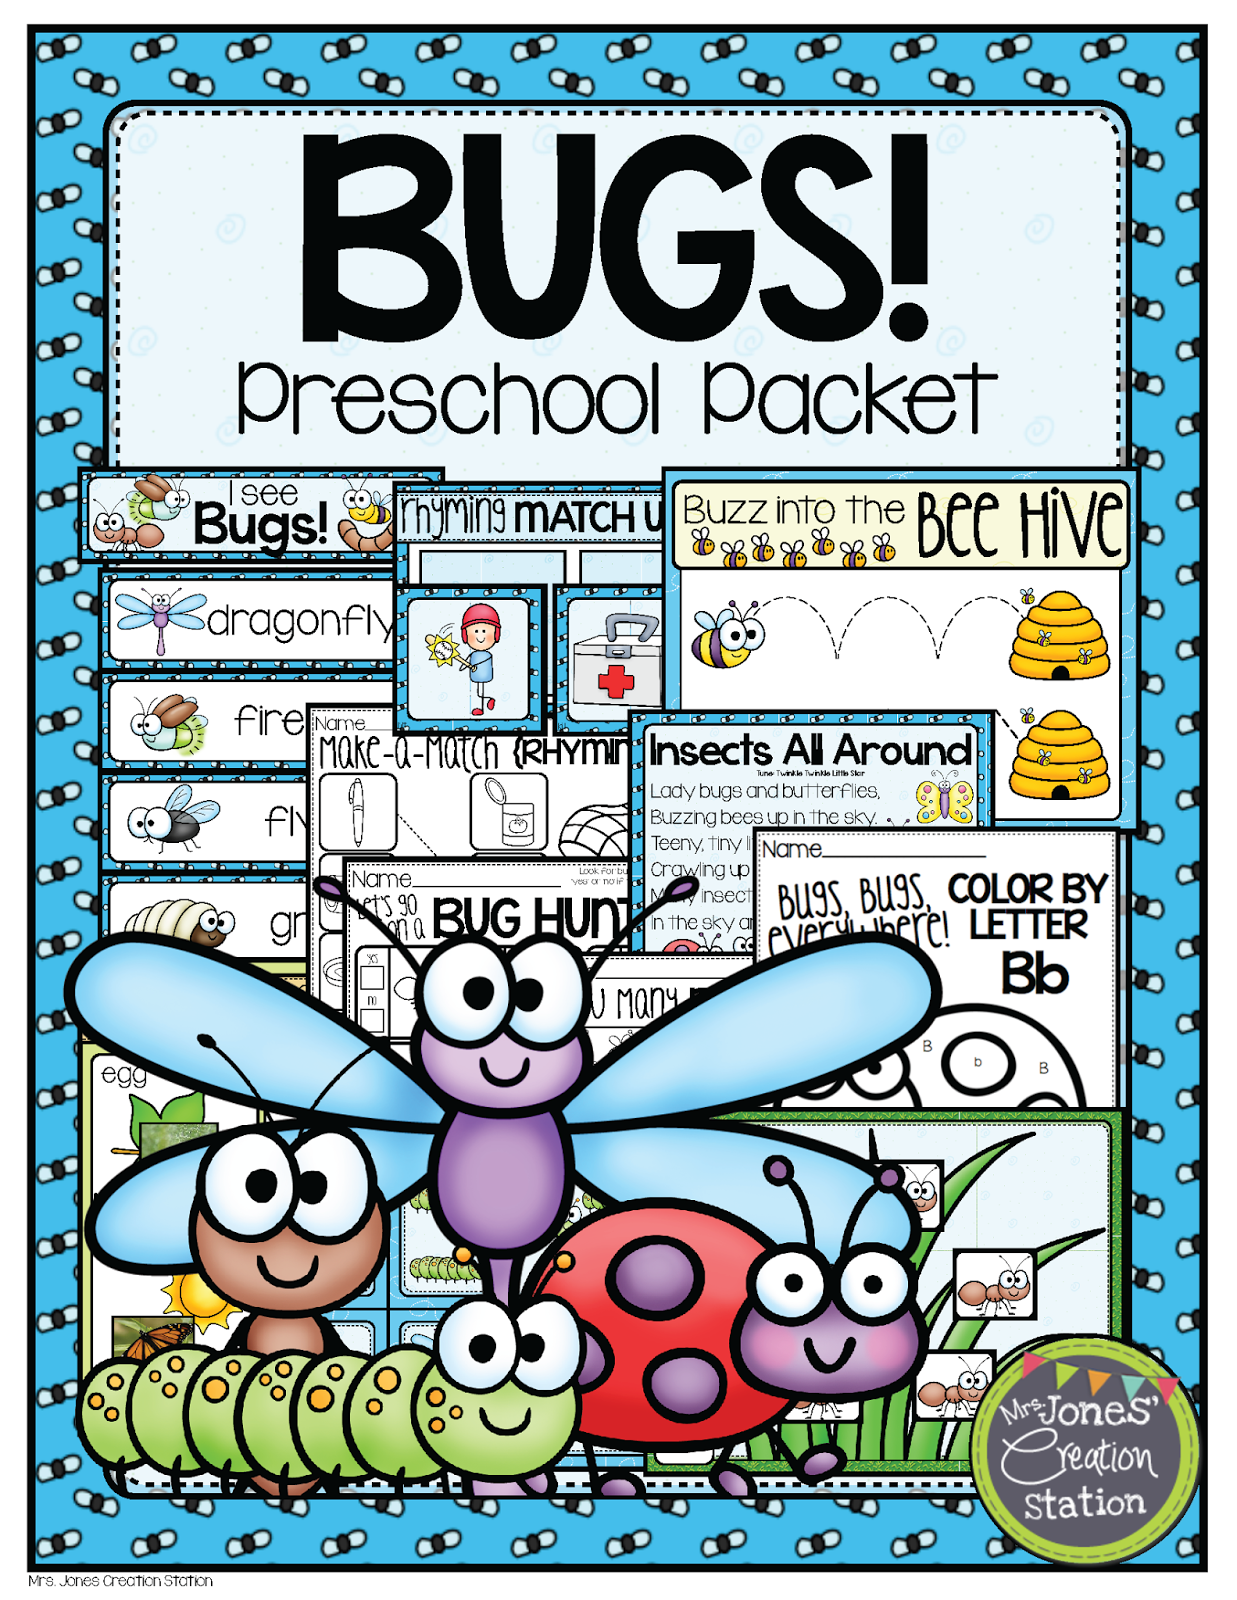 http://www.teacherspayteachers.com/Product/Bugs-Preschool-Pack-1200663